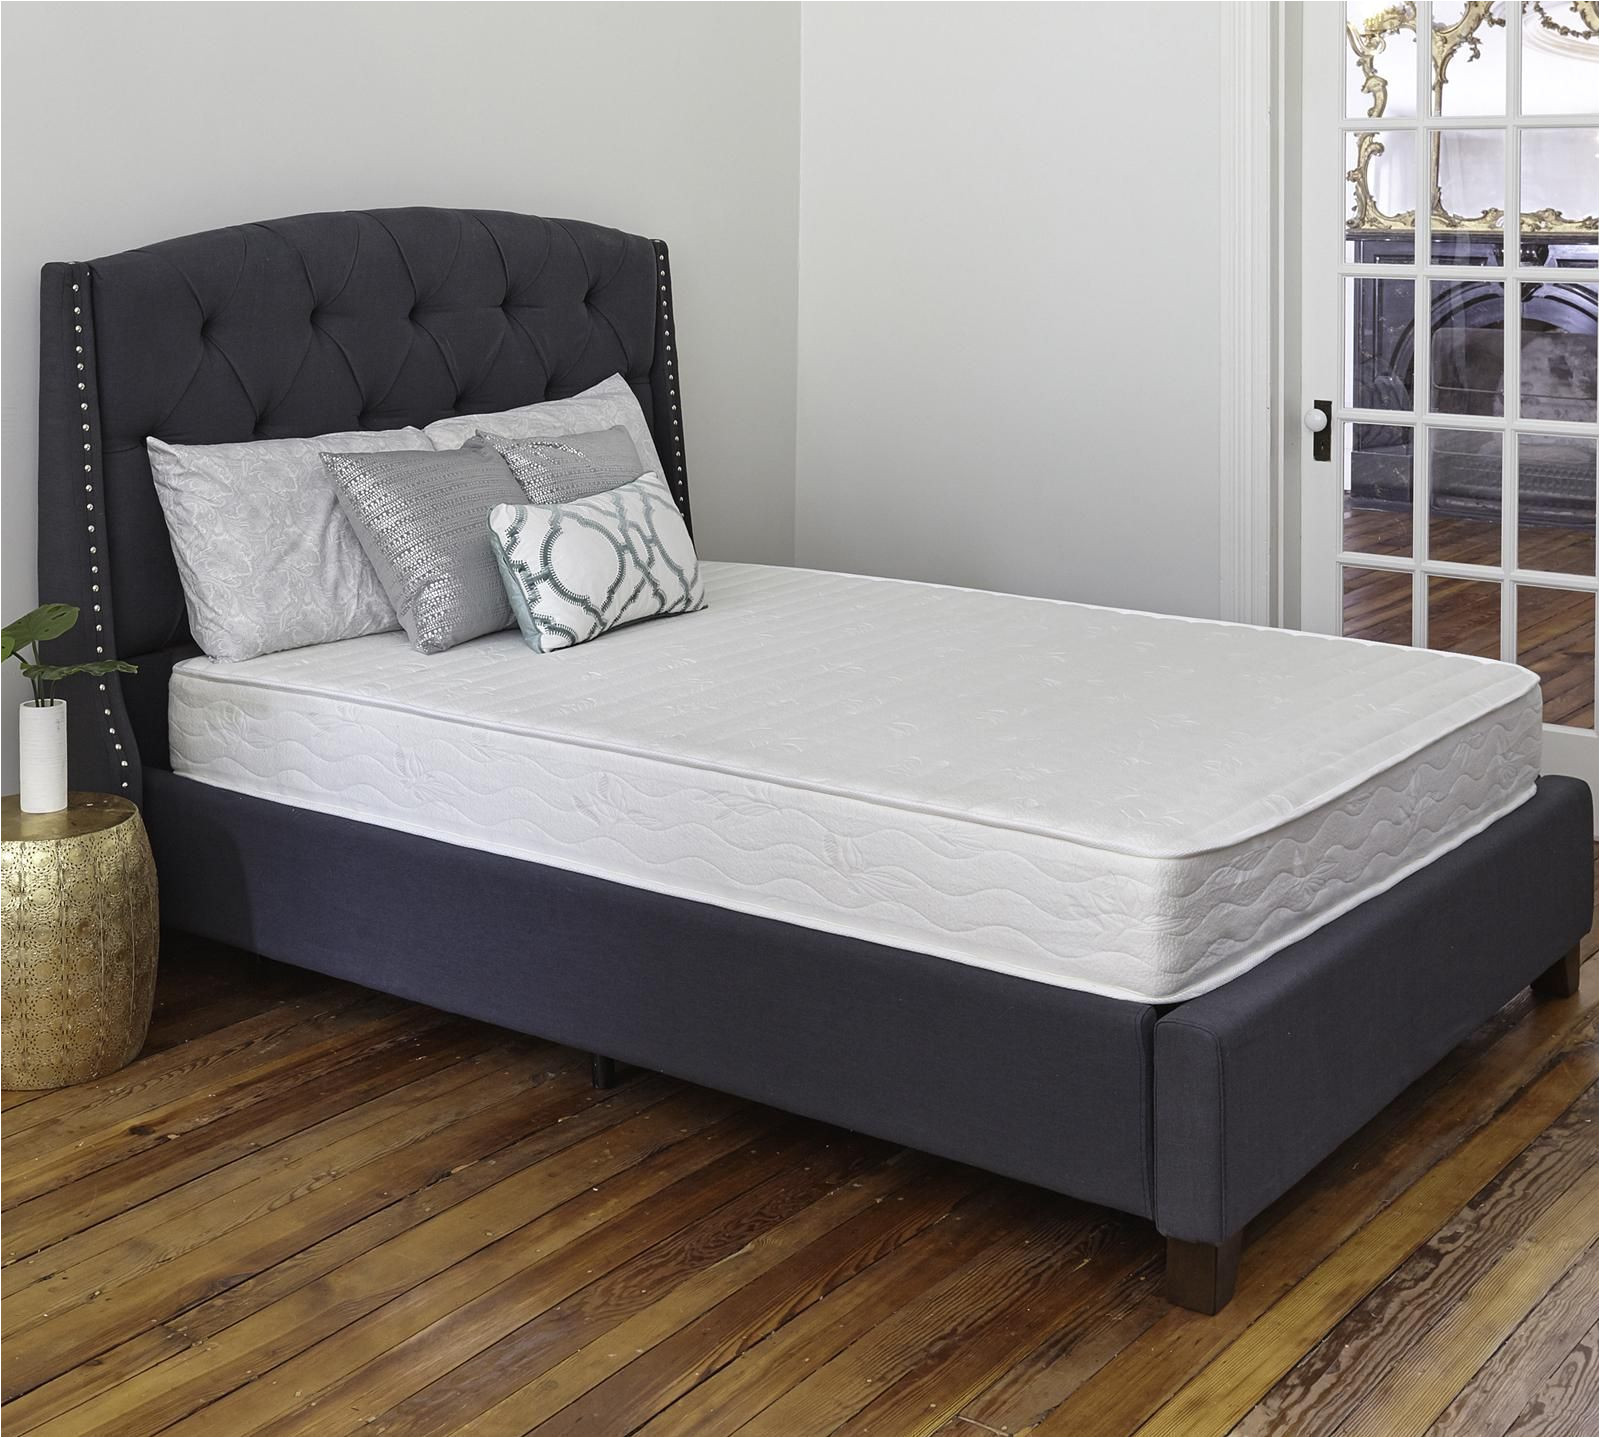 shop for your hampton and rhodes perth 8 innerspring mattress at mattress firm this innerspring mattress equals a great nights sleep mattressfirm